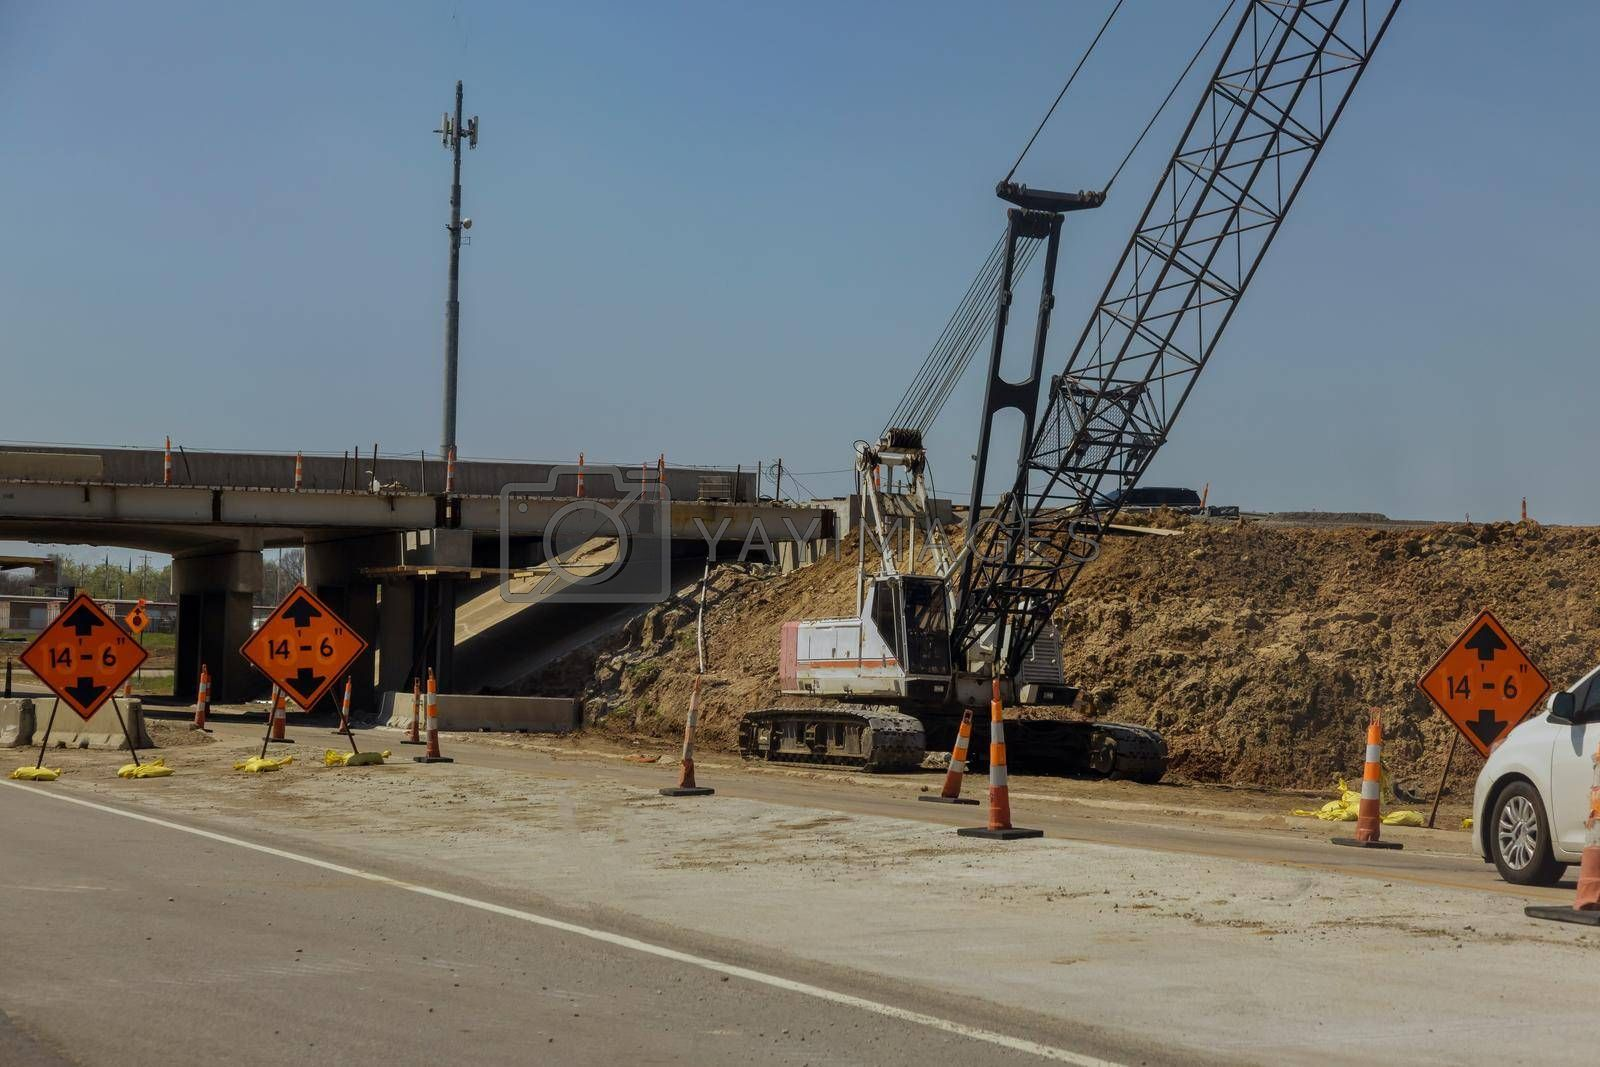 Repair site on the under renovation bridge with road under construction in the USA